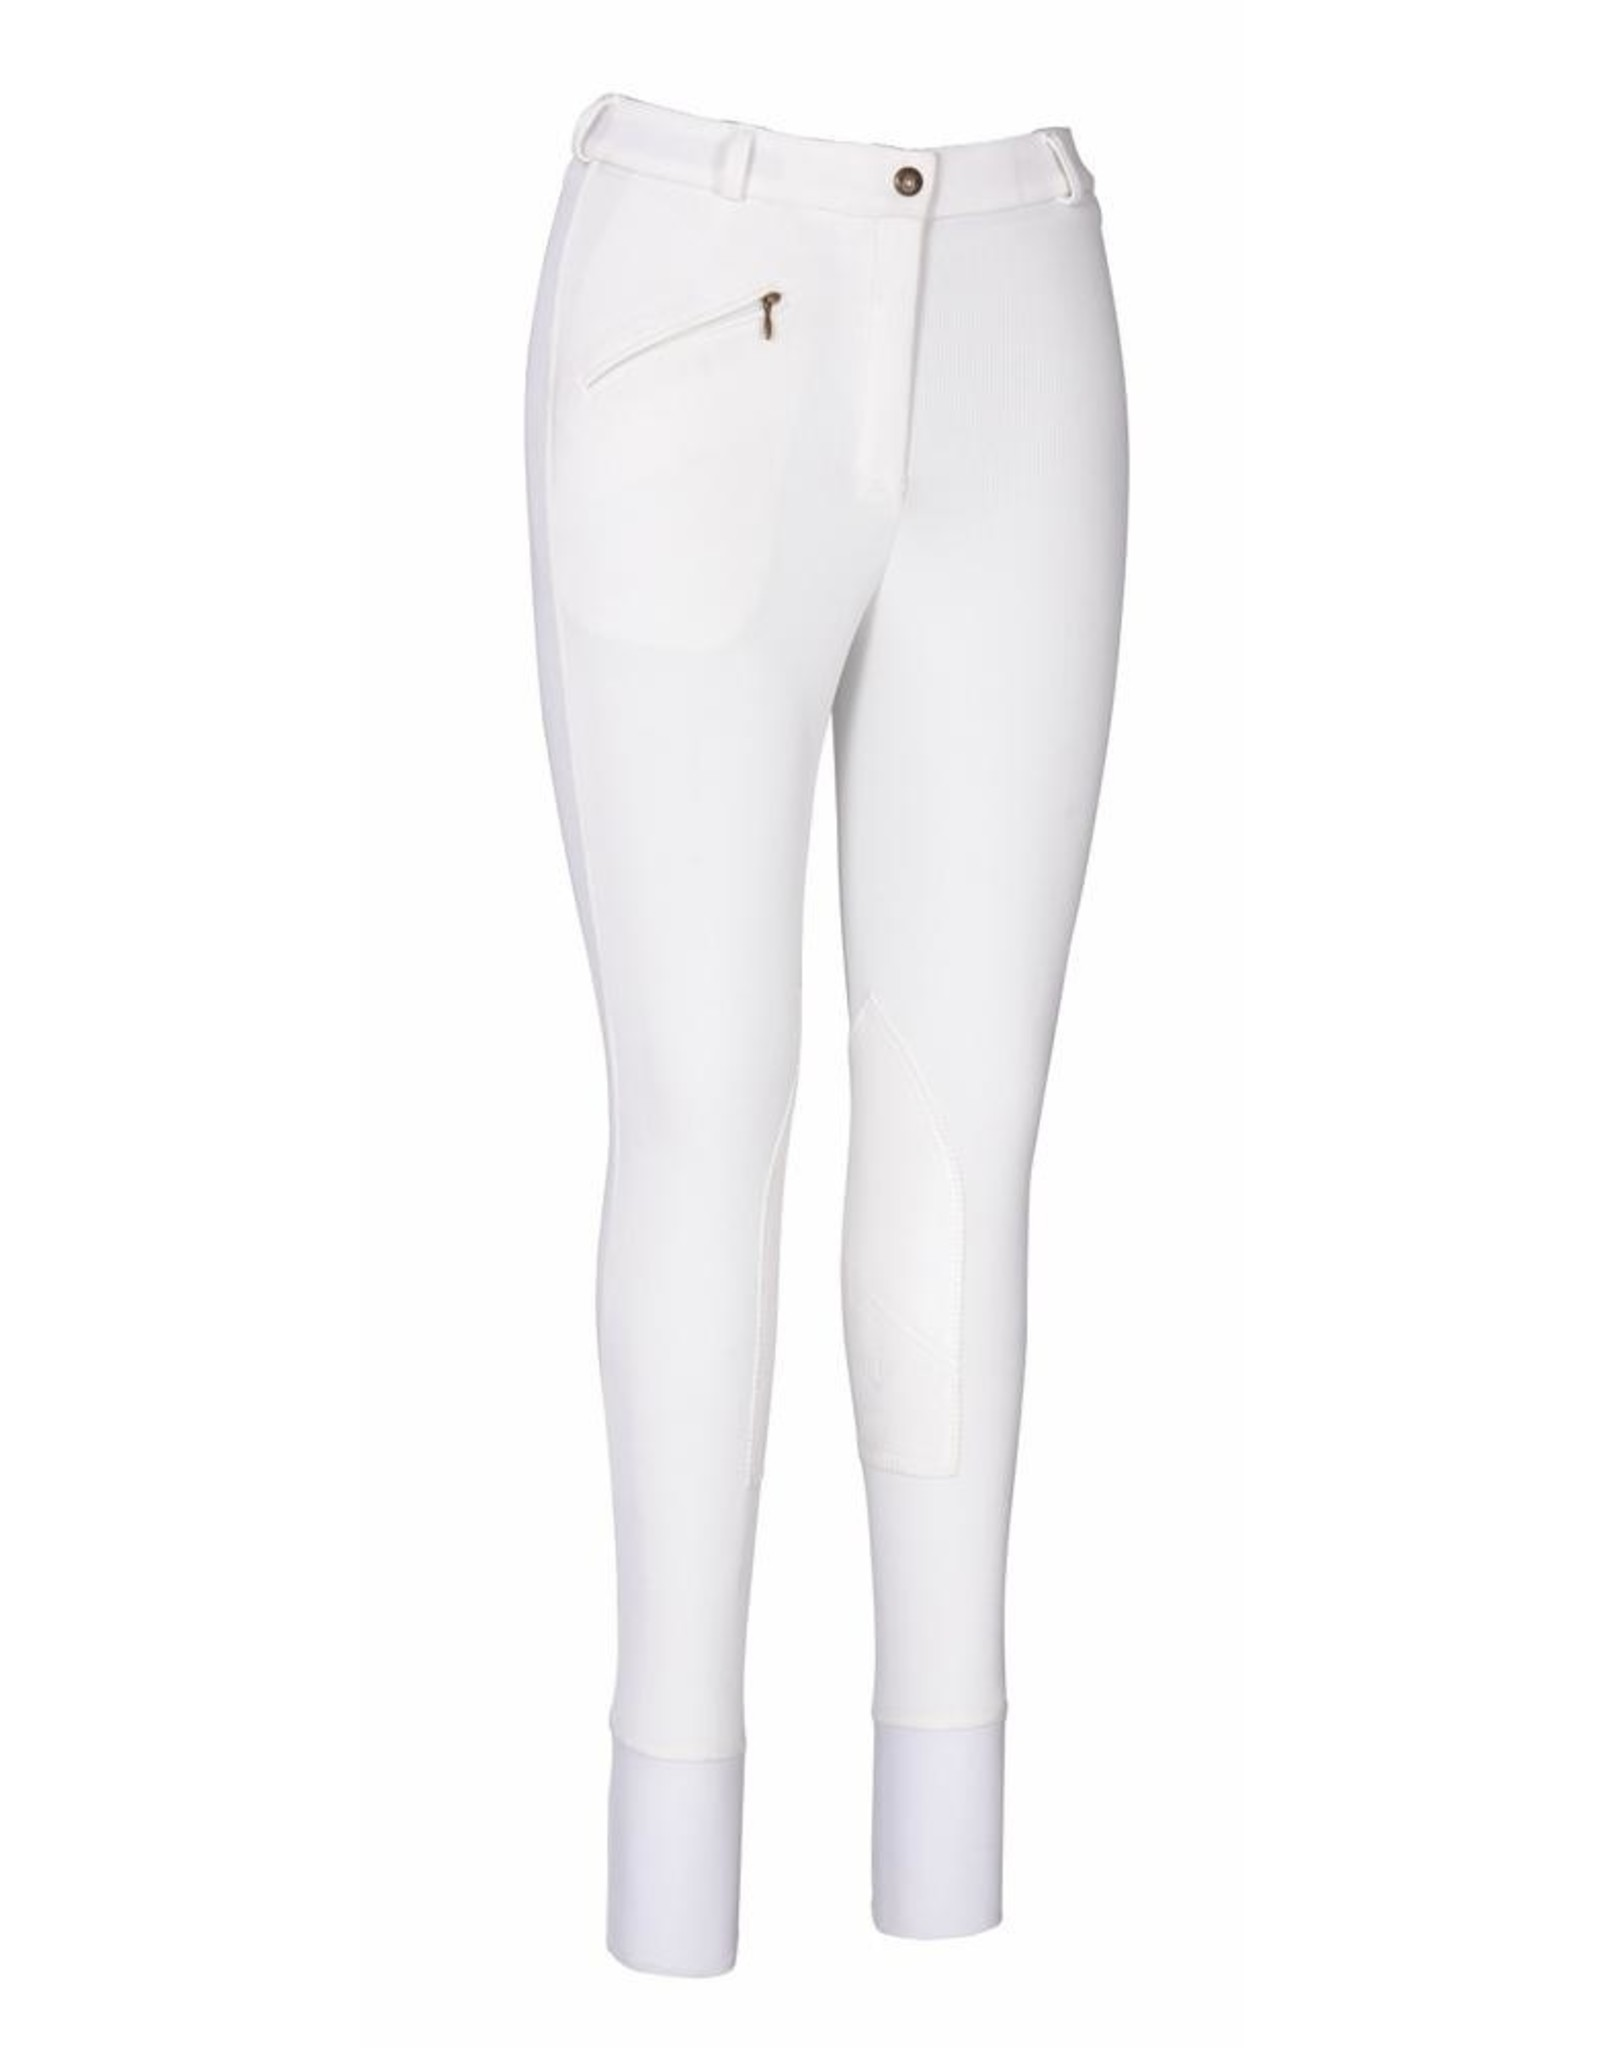 Tuffrider Ribb Knee Patch Breeches